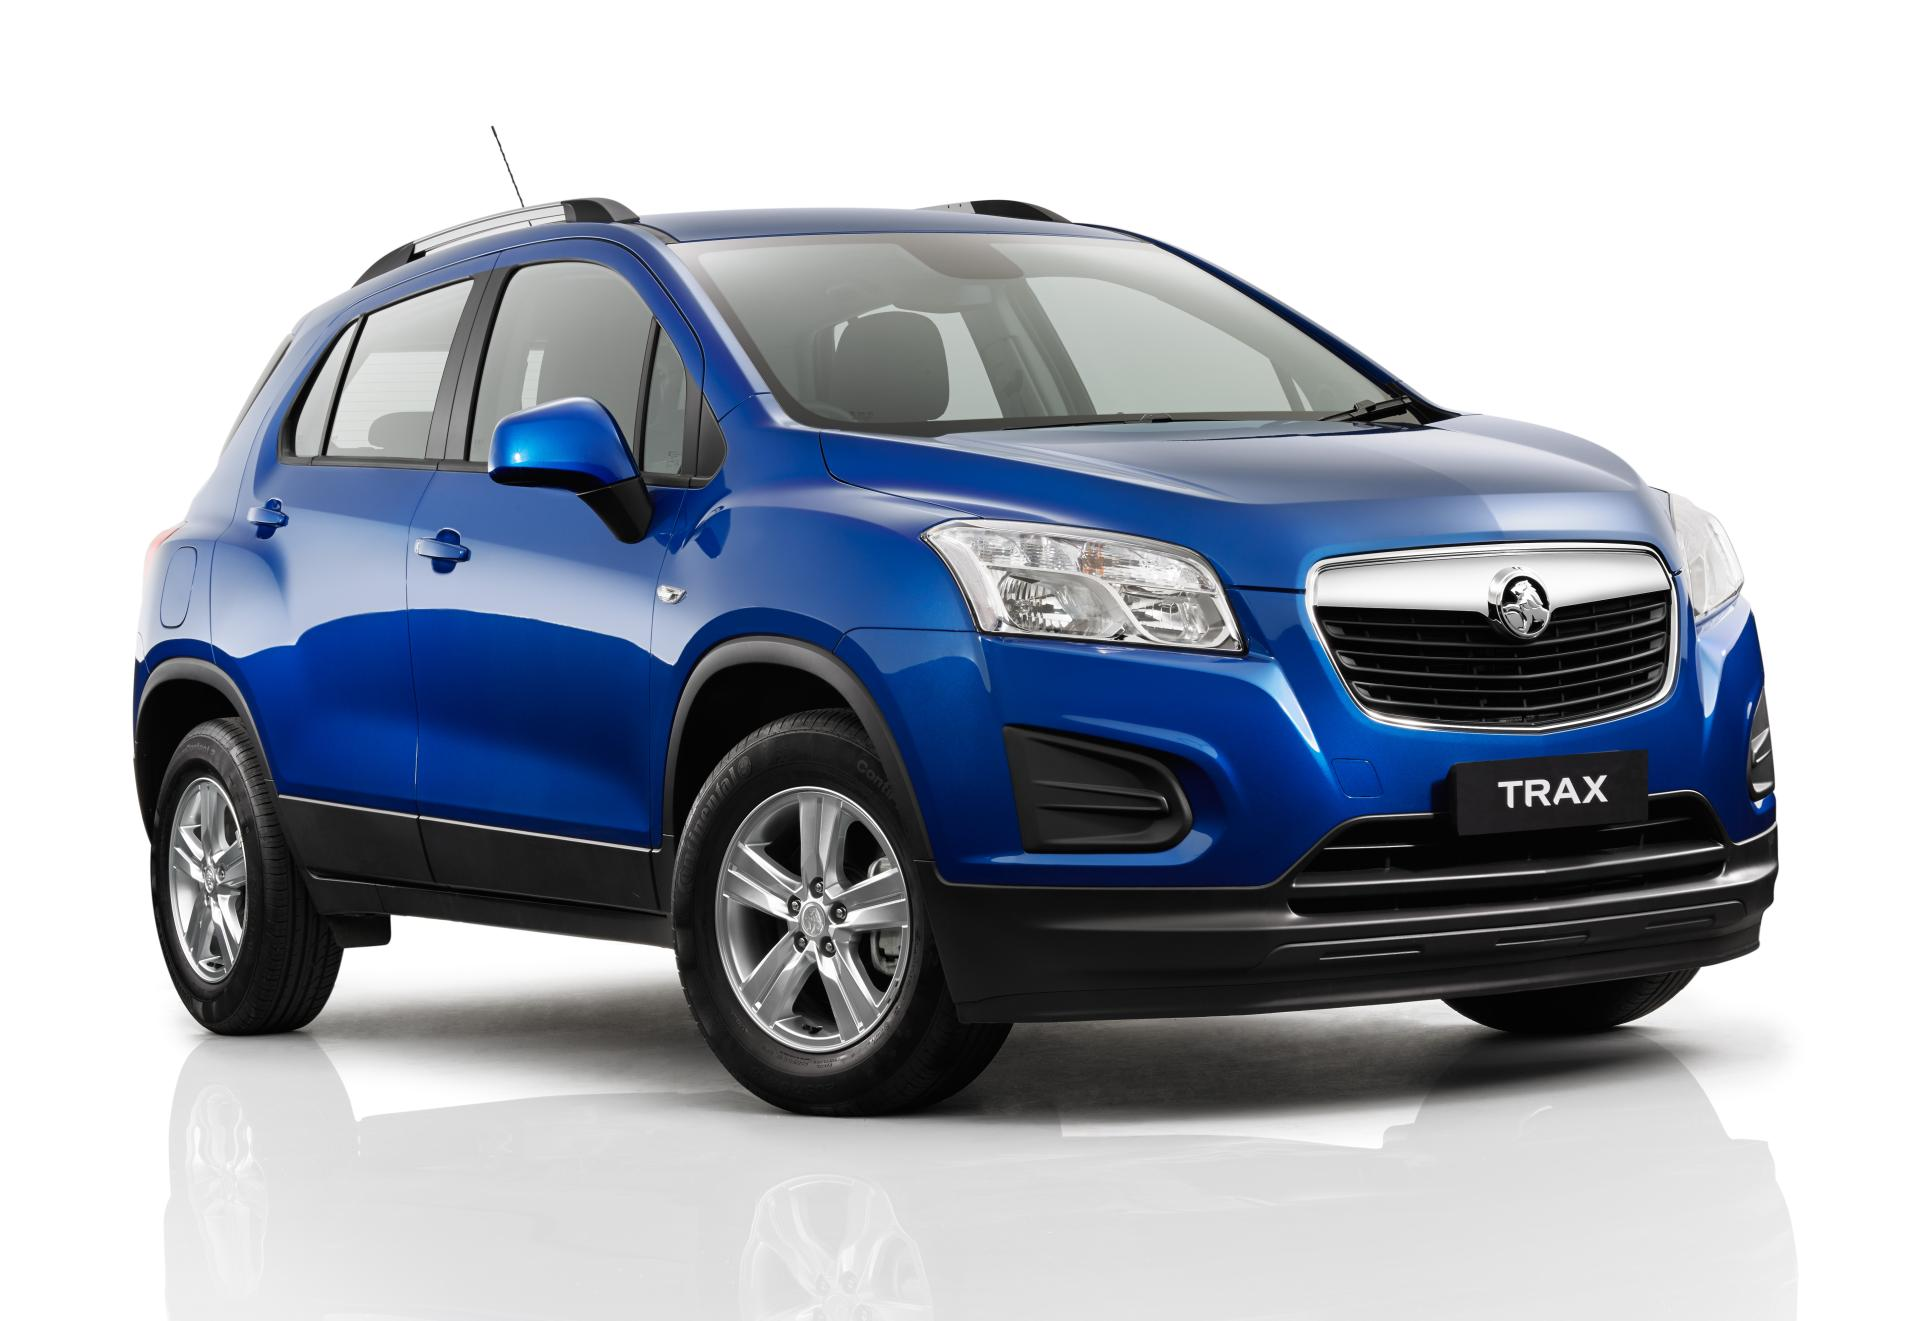 2014 Holden Trax News and Information | conceptcarz.com